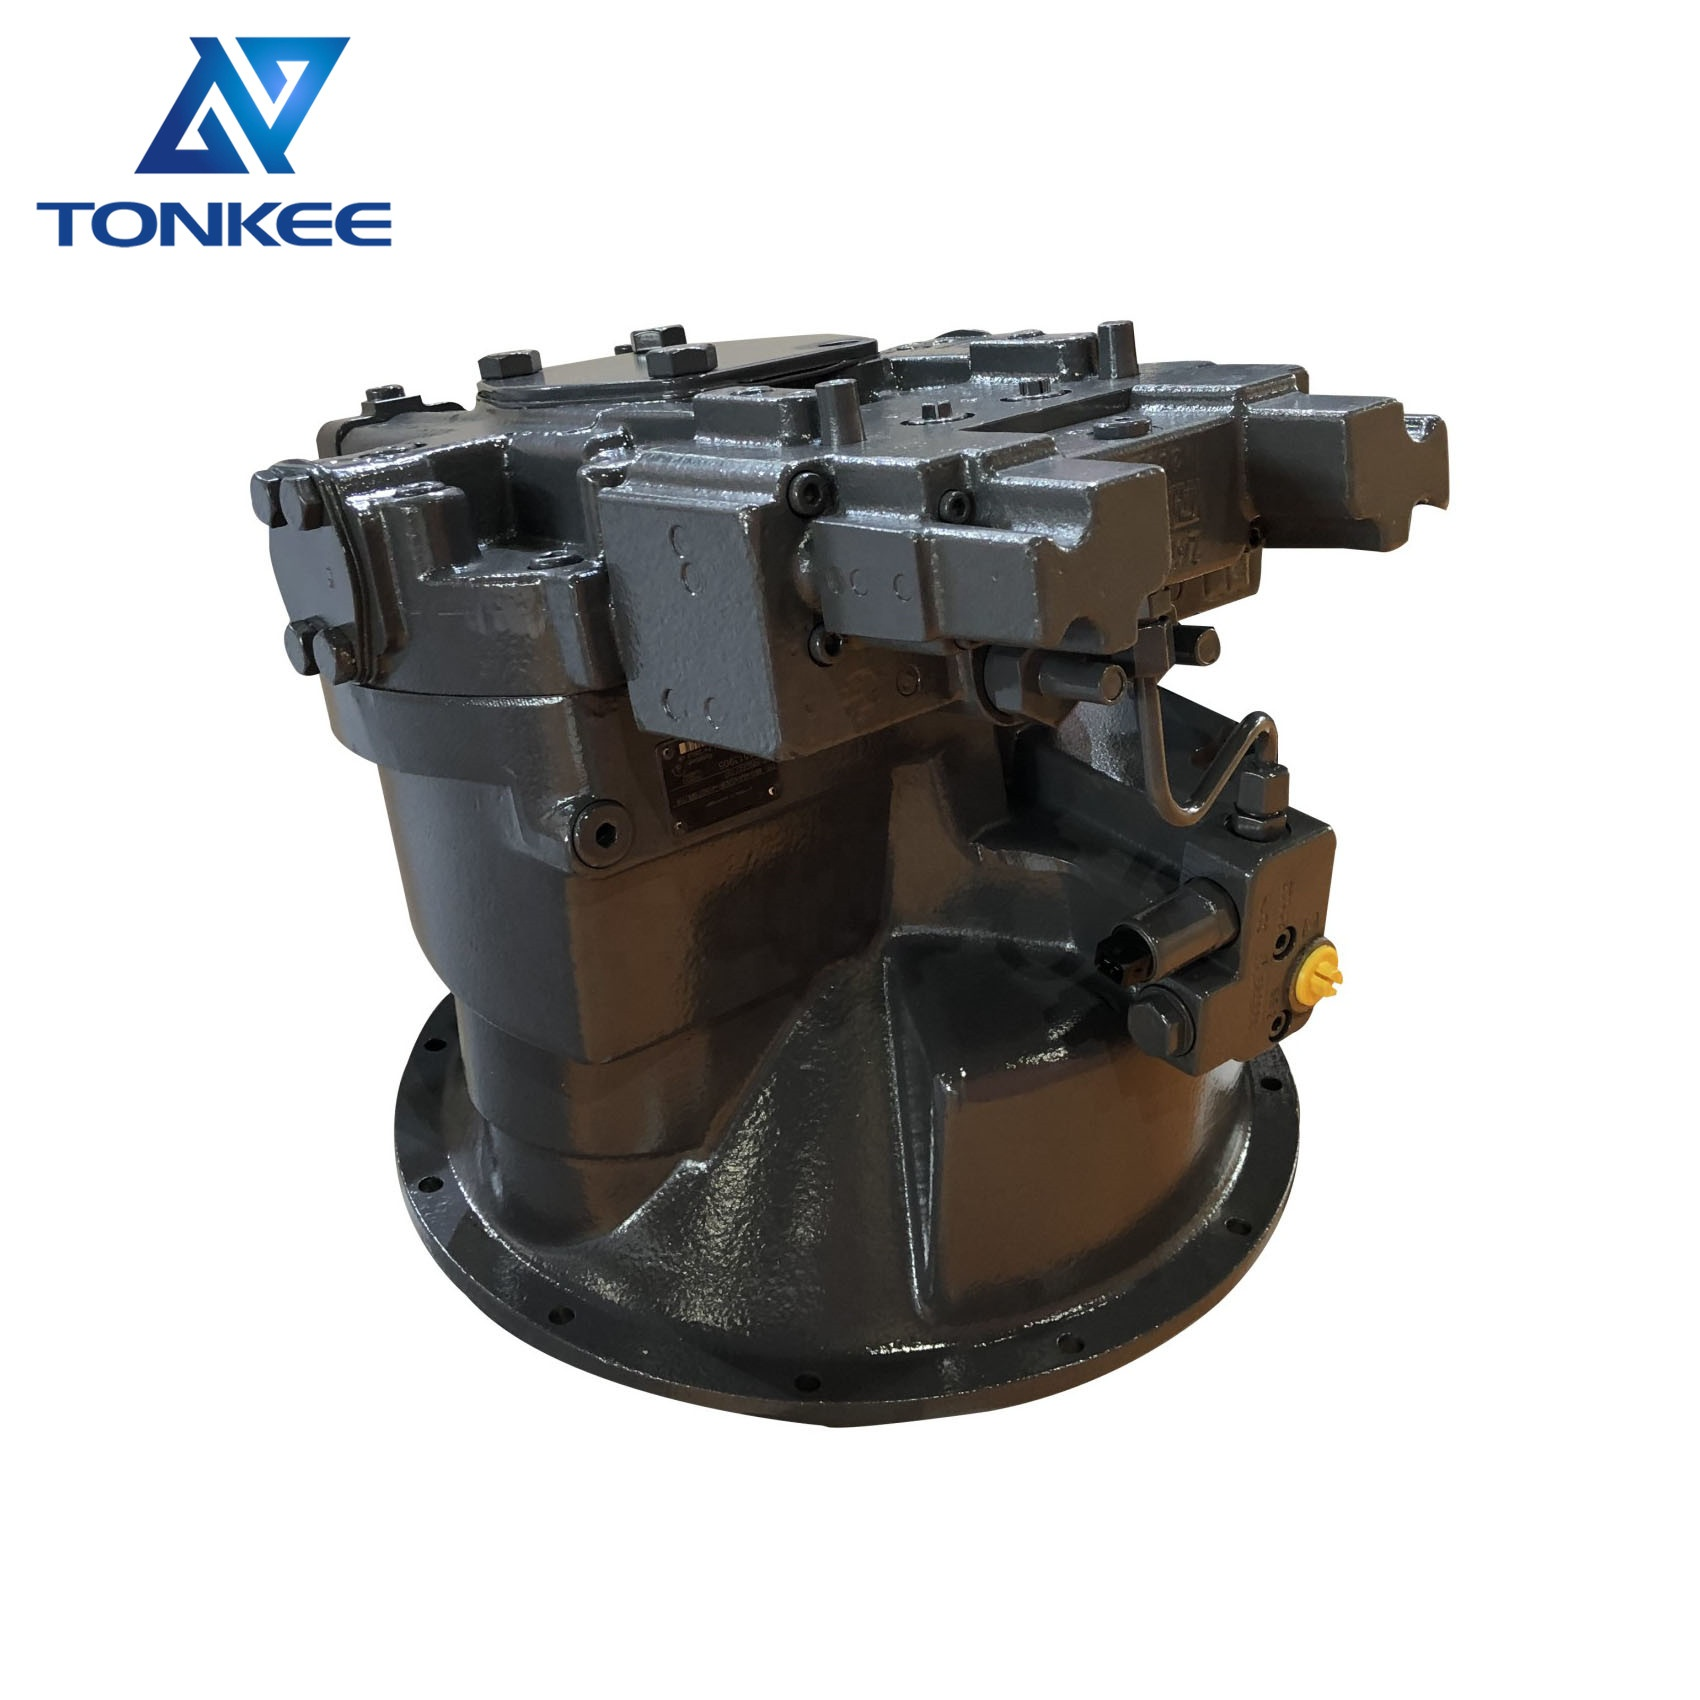 A8VO140LA1KS63R1+A10VO71DFR31R A8VO140+A10VO71 hydraulic main pump assy XR220D XR280D XR320D XR360 hydraulic piston pump assembly suitable for XCMG (5).jpg